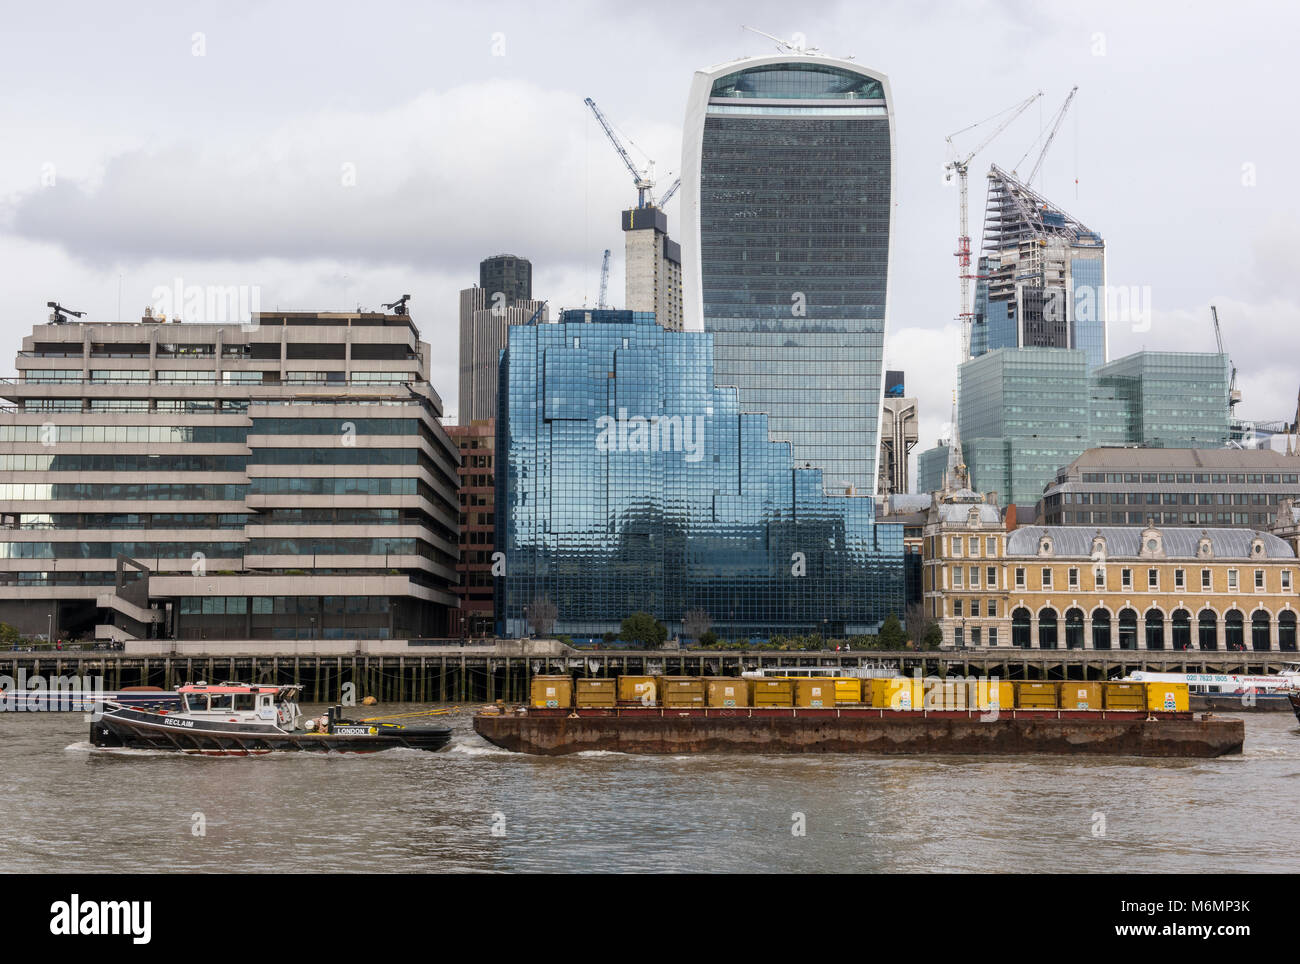 a tug boat towing containers full of london's waste and rubbish along the river thames in the centre of the - Stock Image